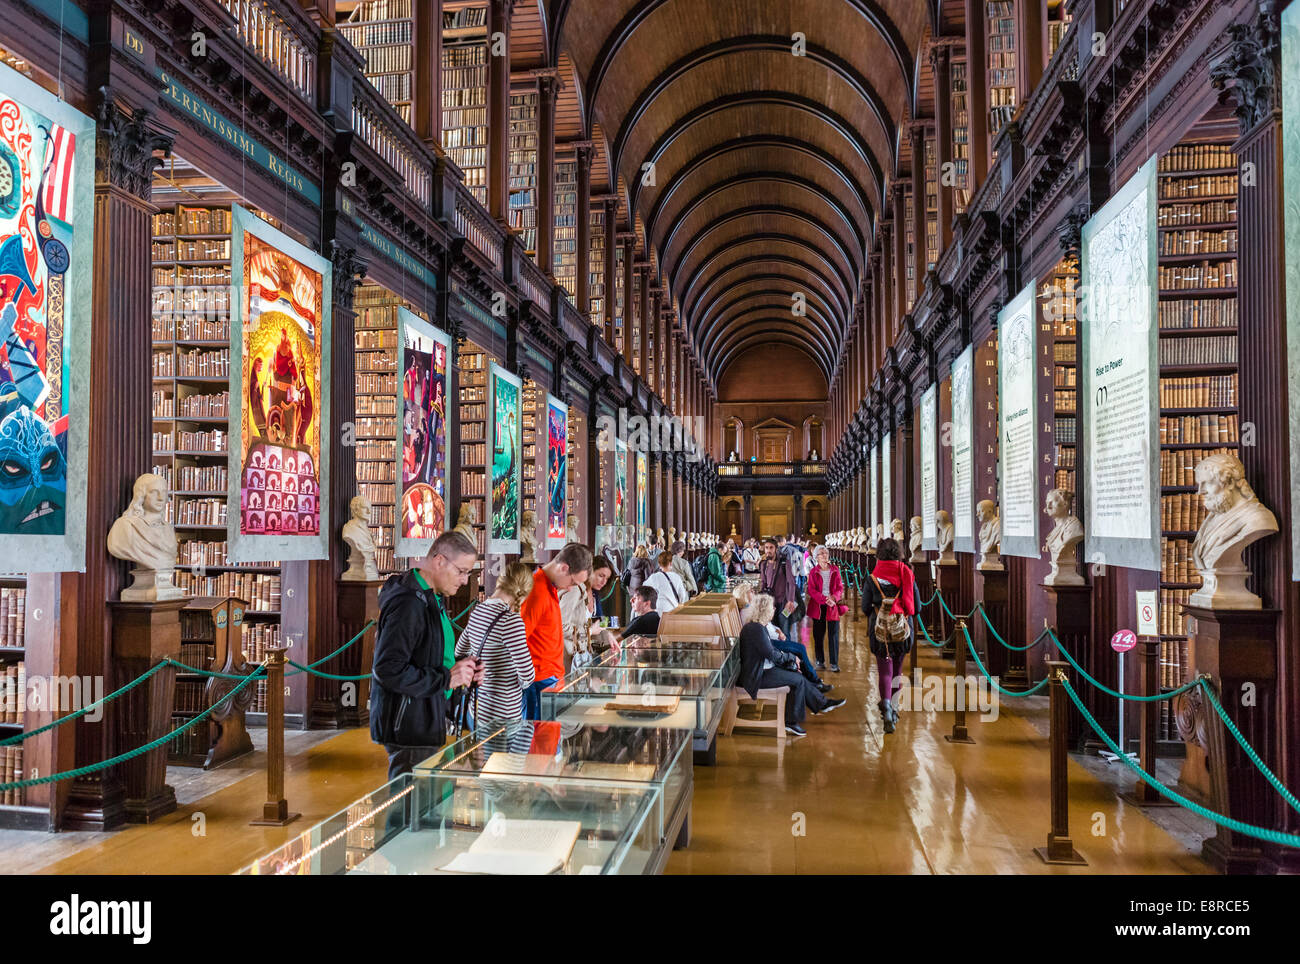 Trinity College Lobrary. The Long Room in The Old Library, Trinity College, Dublin, Ireland - The Book of Kells - Stock Image